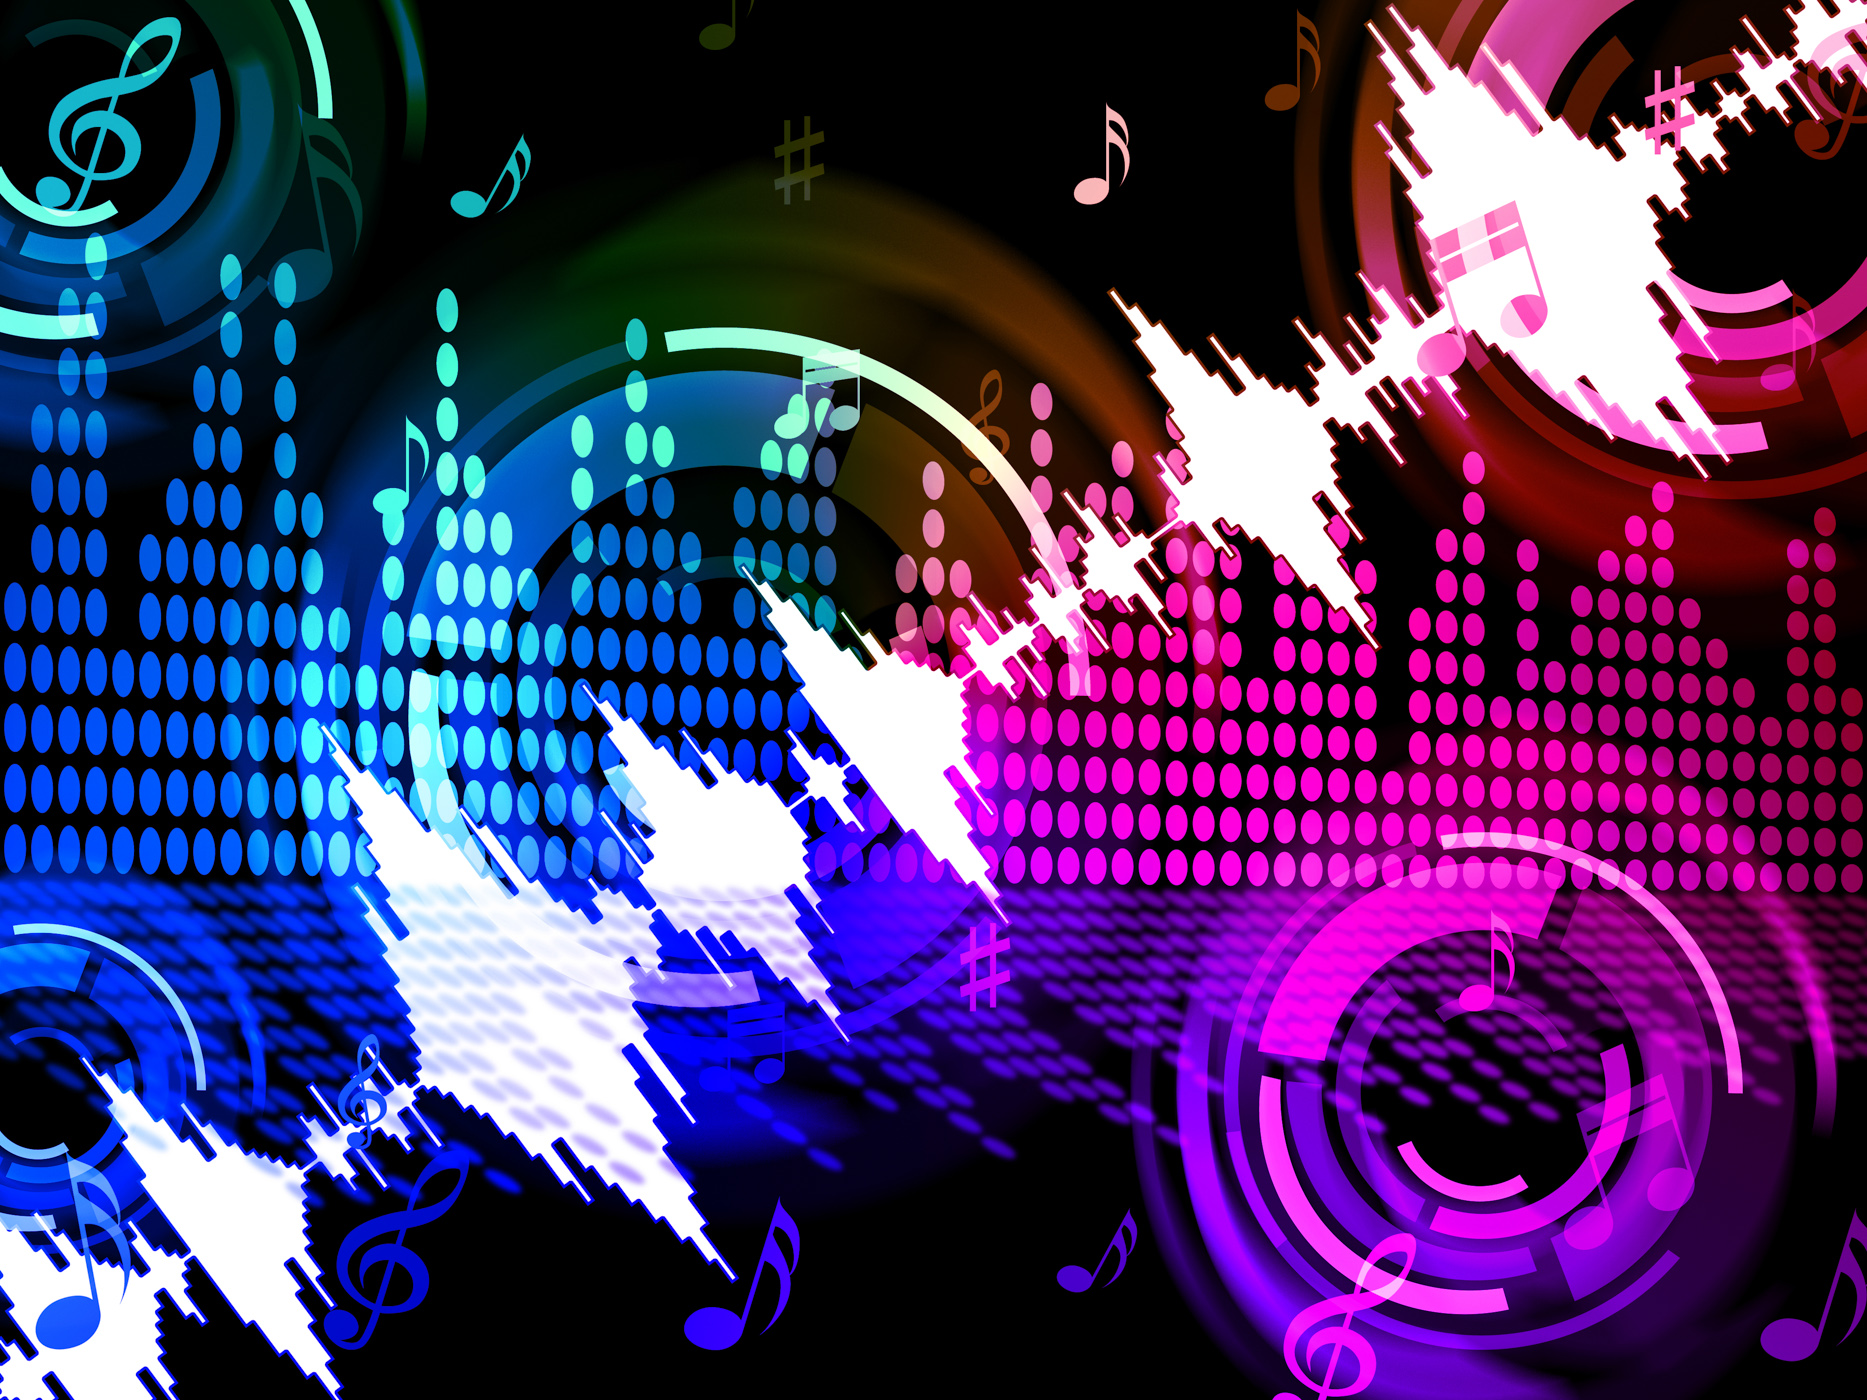 Free Photo Sound Wave Background Means Audio Amplifier Or Music Mixer Abstract Graphic Volume Free Download Jooinn